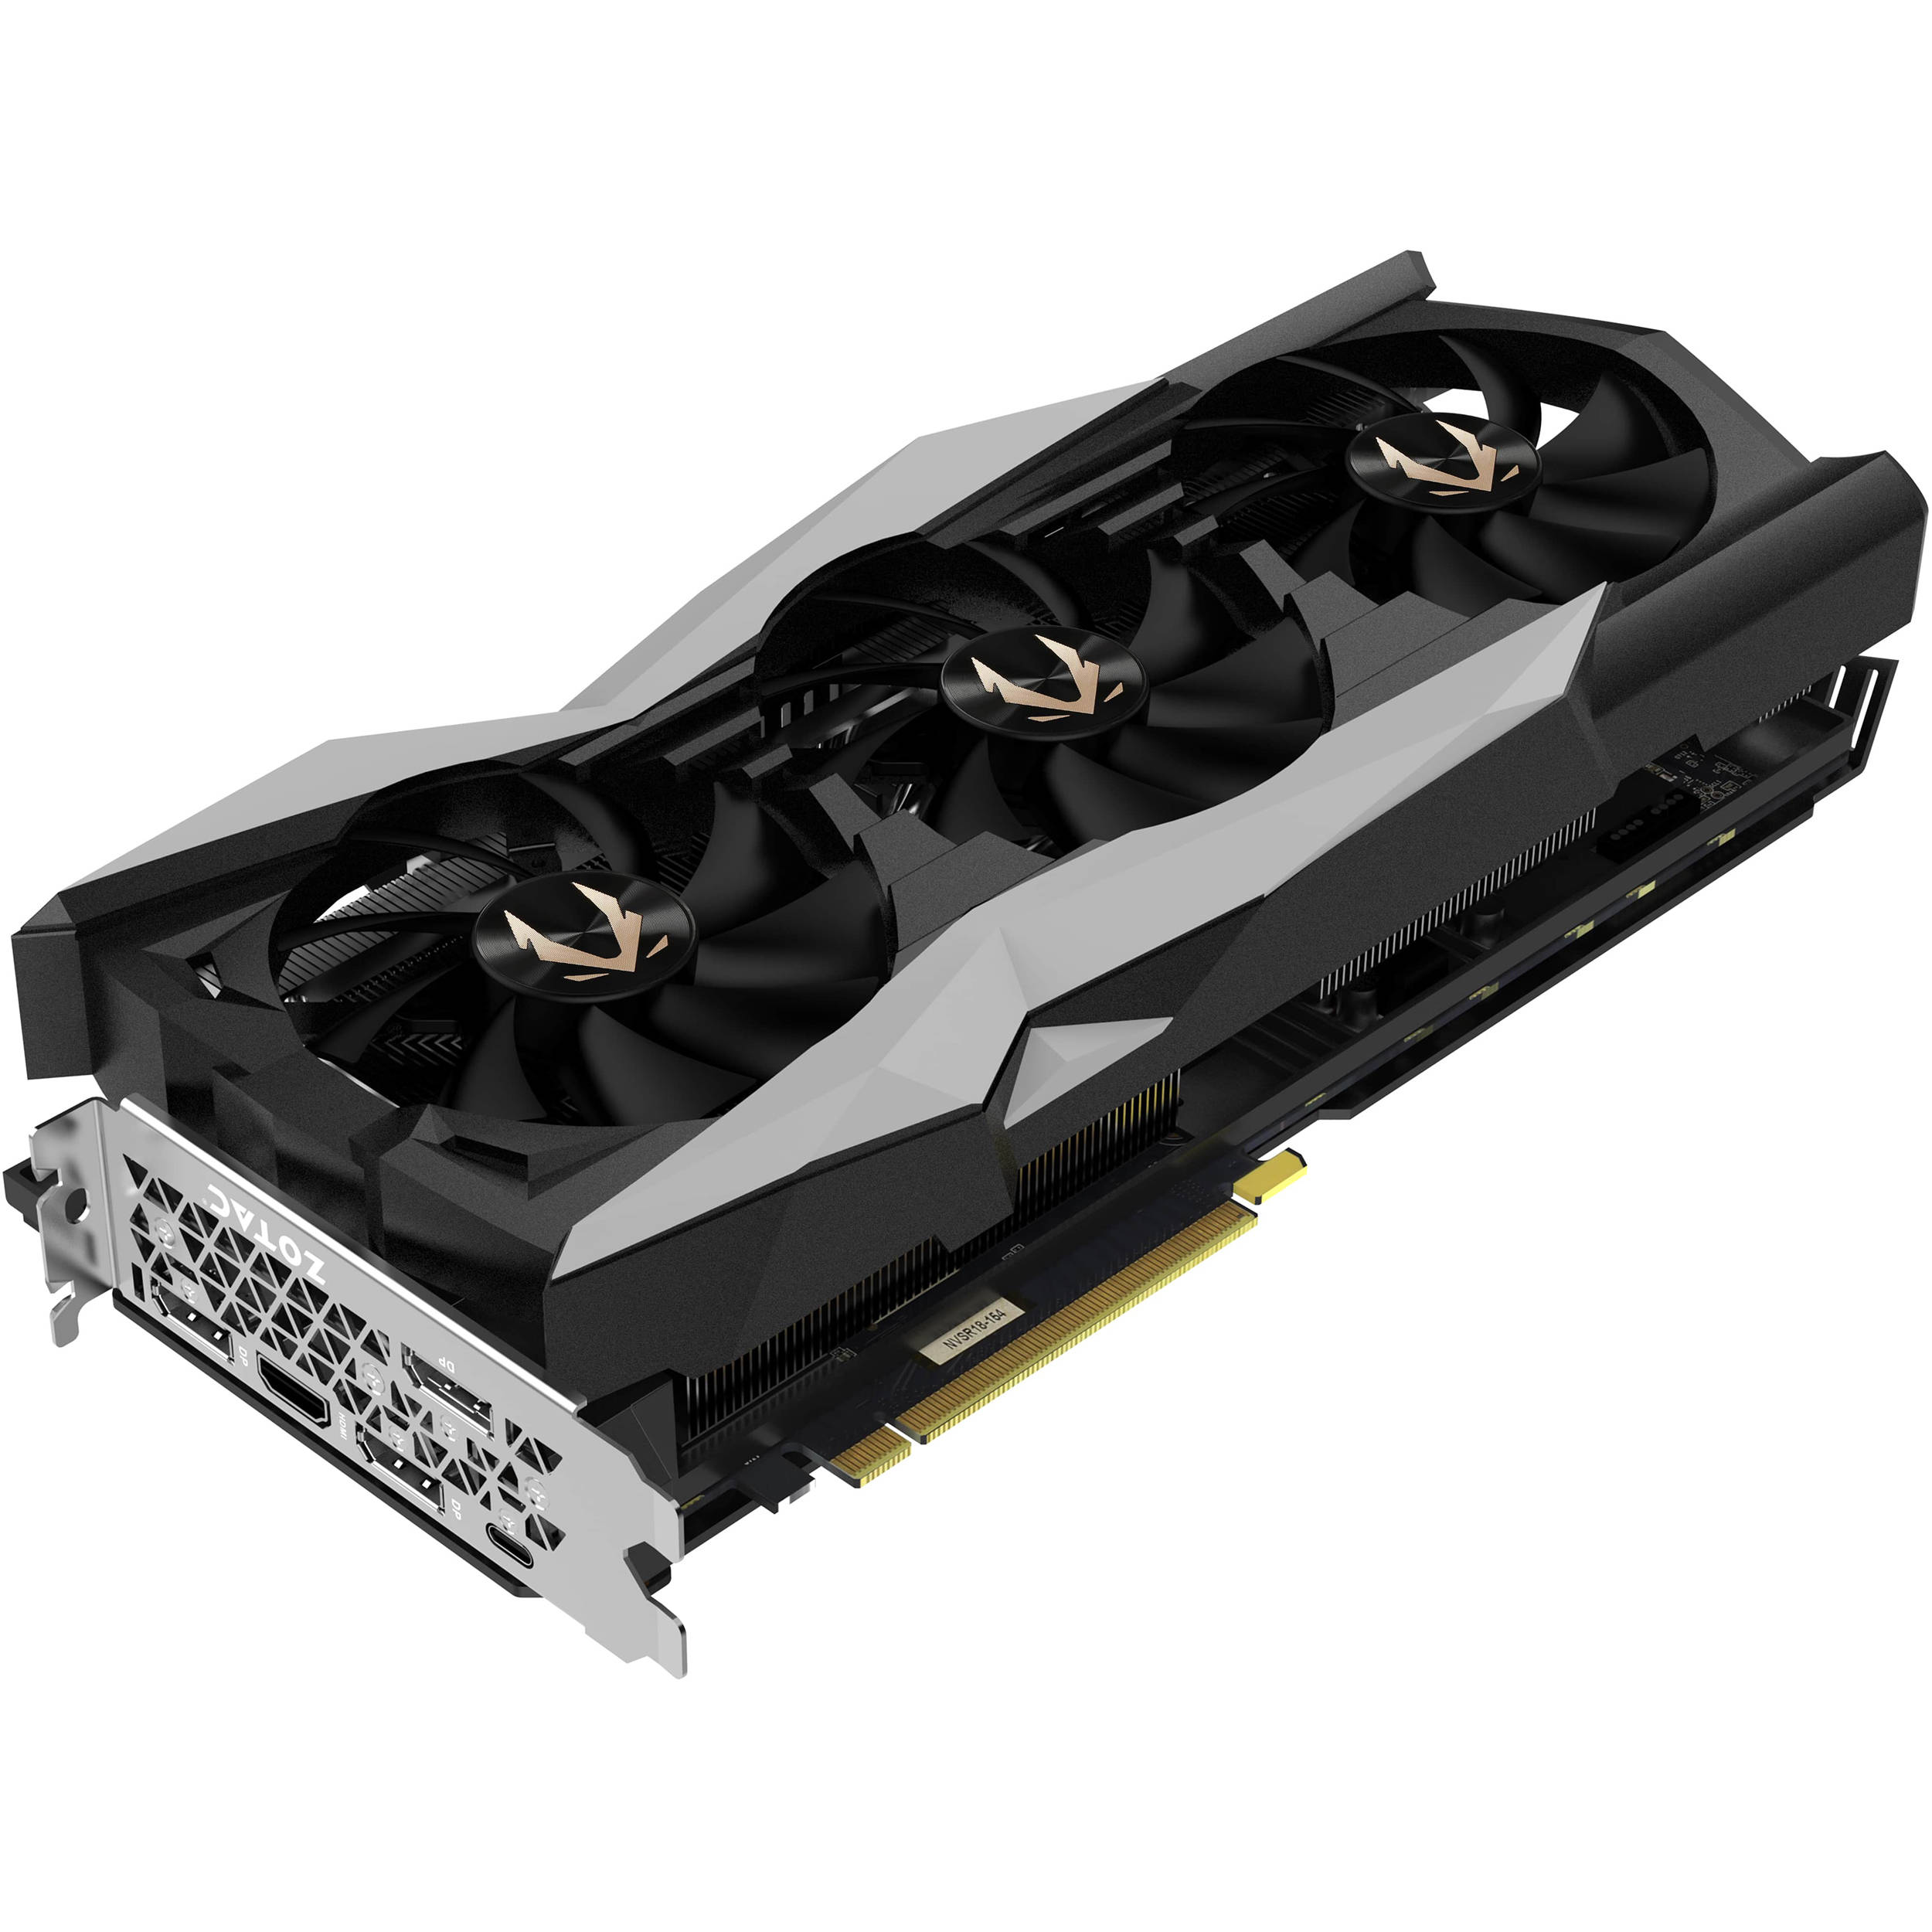 ZOTAC GAMING GeForce RTX 2080 Ti AMP Extreme Graphics Card